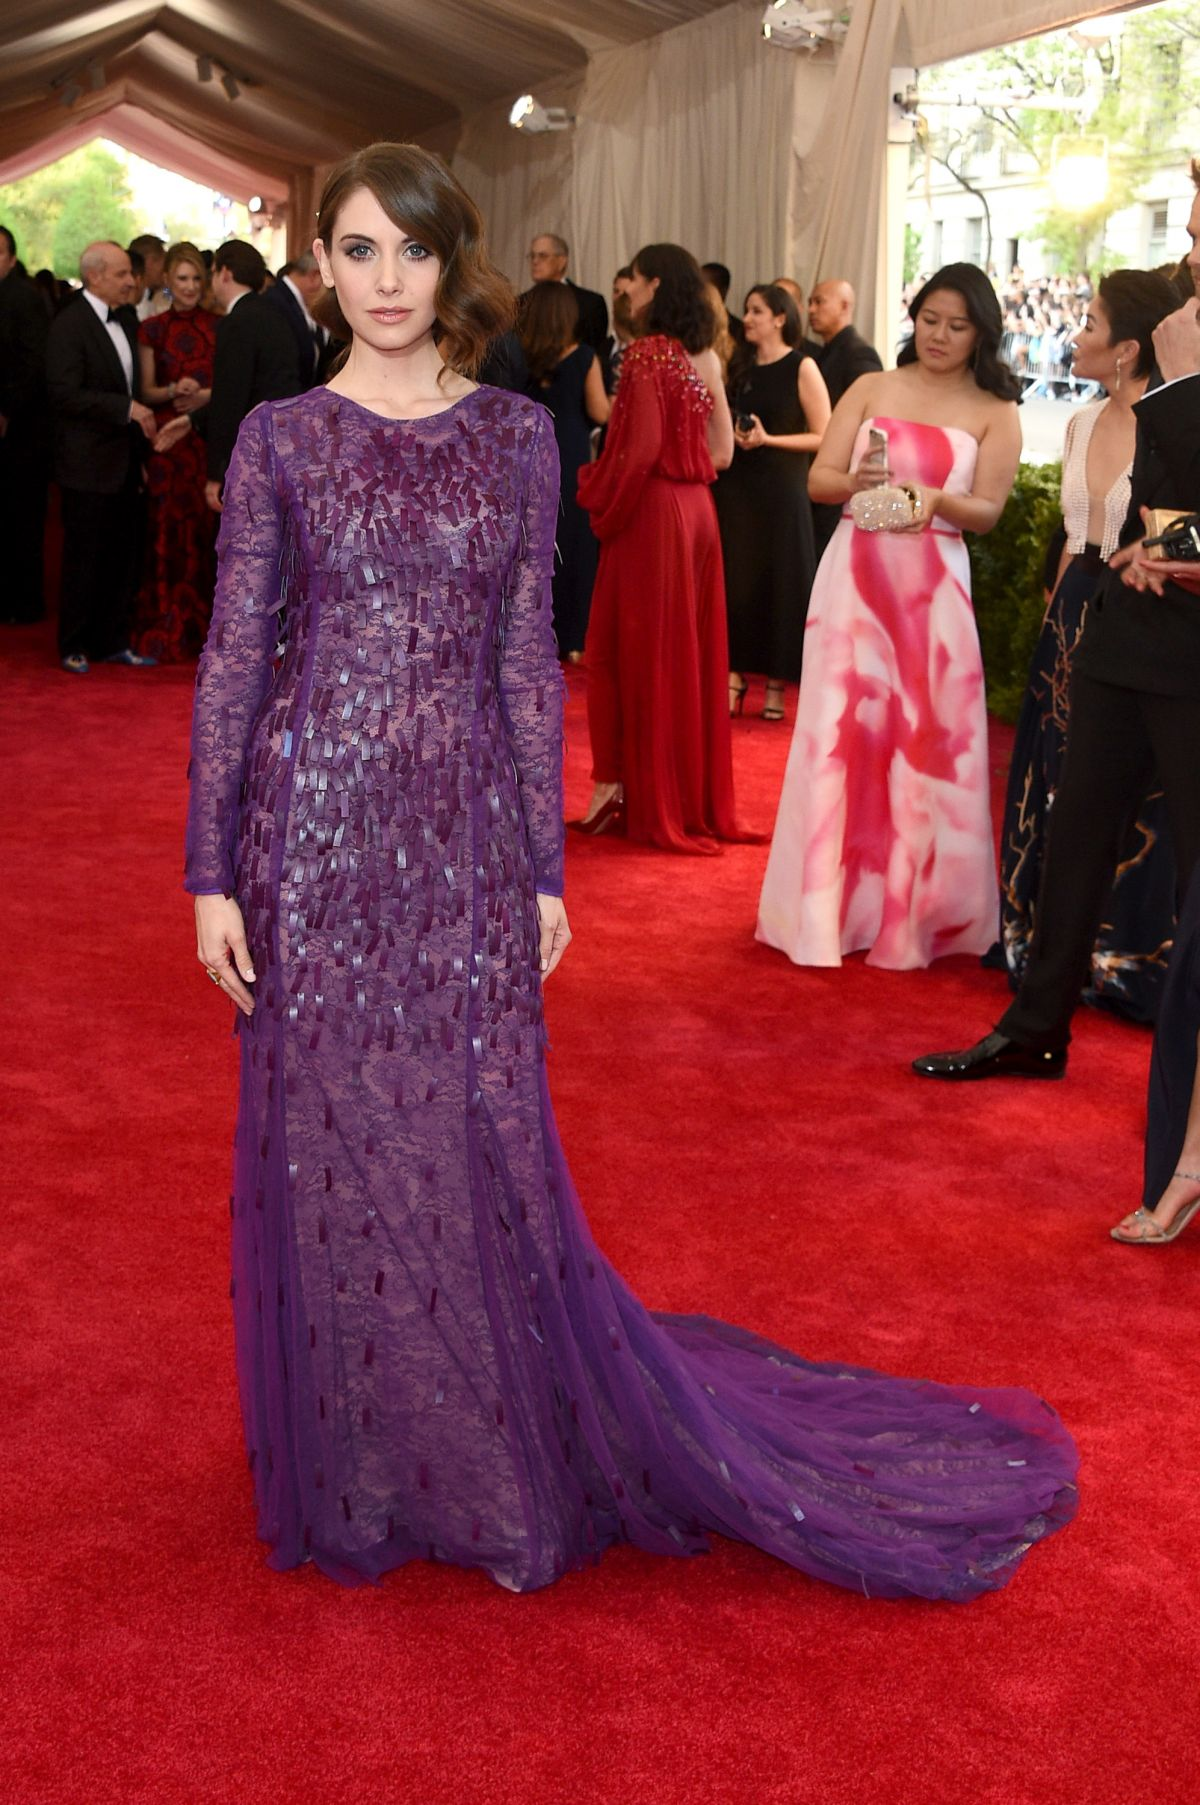 ALISON BRIE at MET Gala 2015 in New York